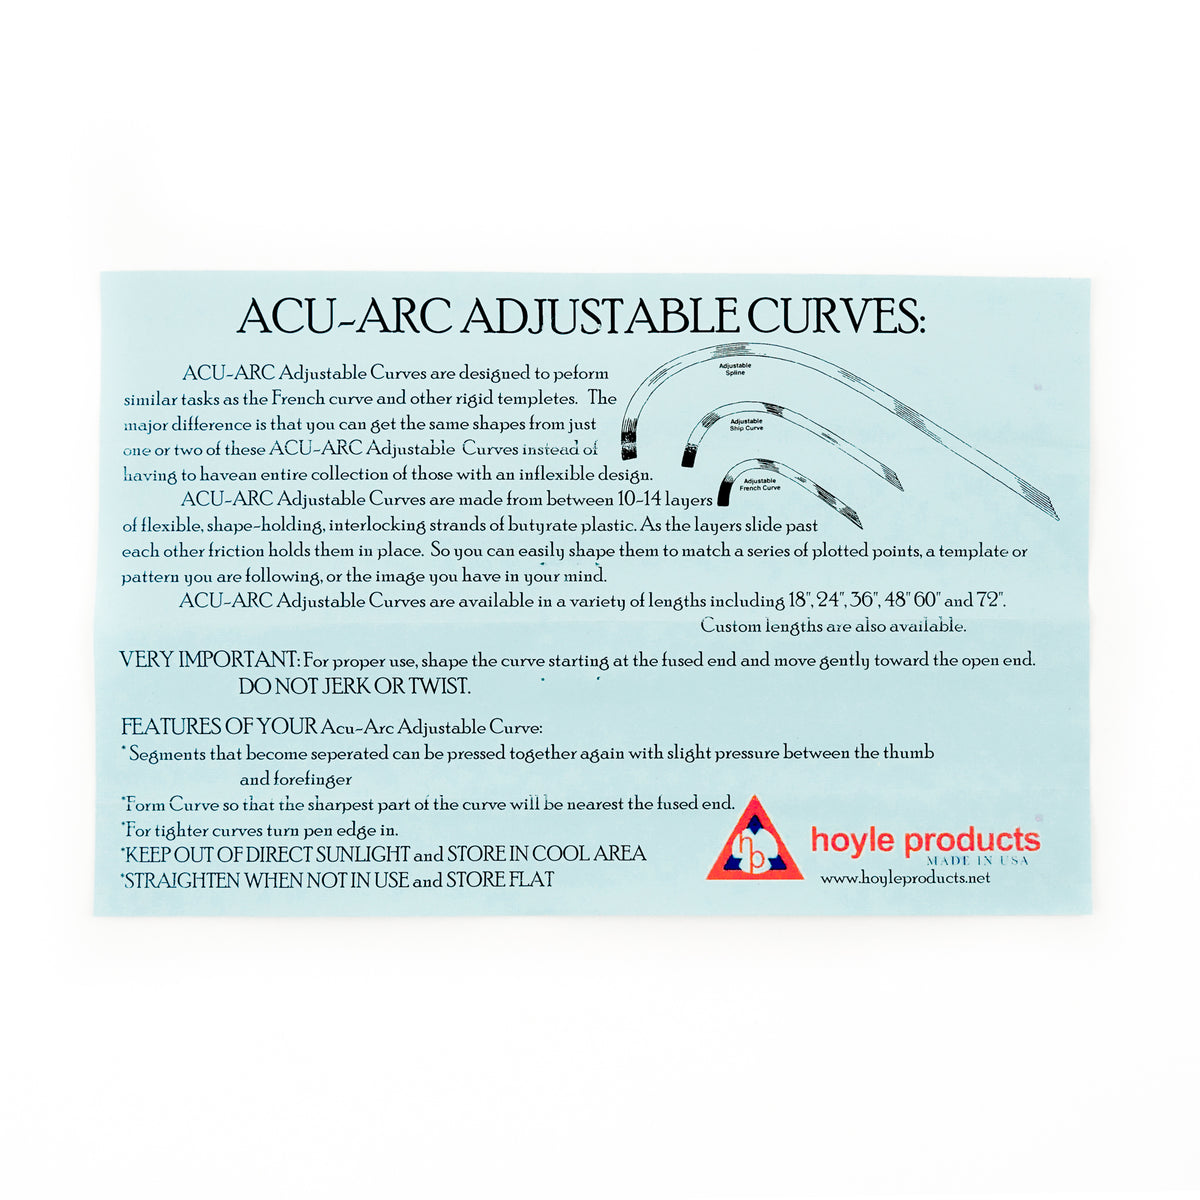 Acu-Arc Adjustable Curve